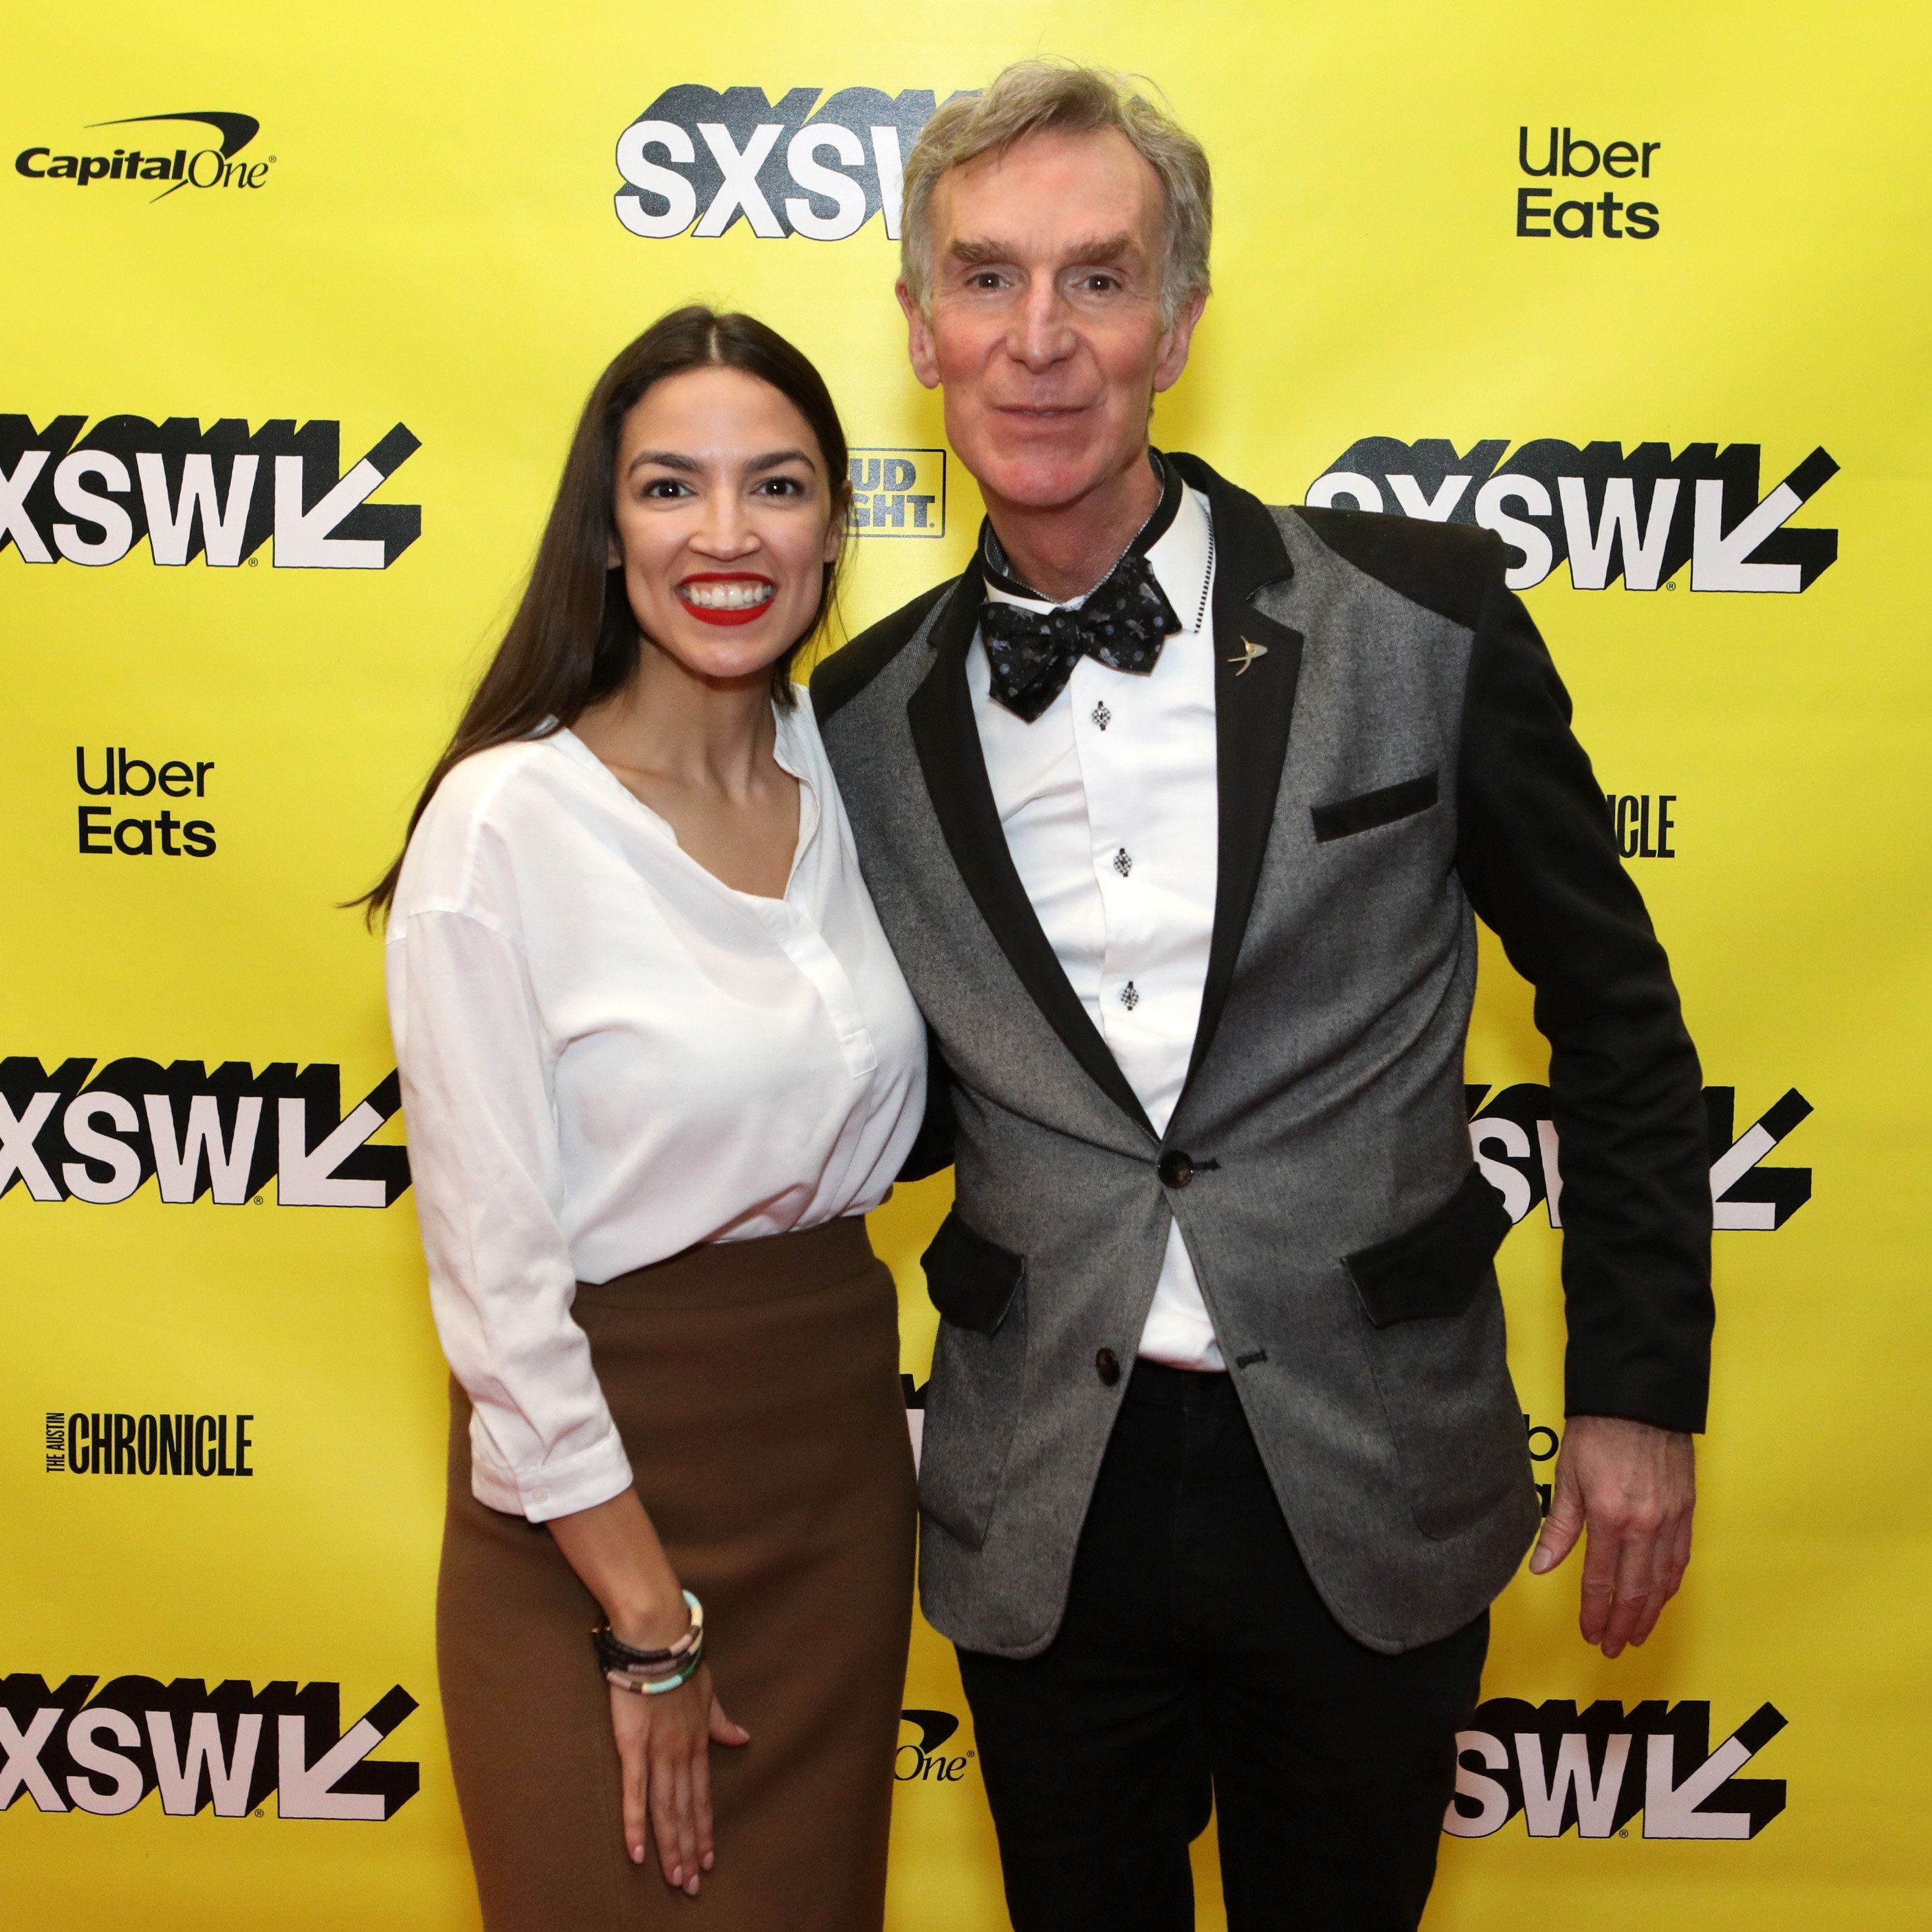 AUSTIN, TX - MARCH 09:  (L-R) Alexandria Ocasio-Cortez and Bill Nye attend Featured Session: Alexandria Ocasio-Cortez and the New Left during the 2019 SXSW Conference and Festivals at Austin Convention Center on March 9, 2019 in Austin, Texas.  (Photo by Samantha Burkardt/Getty Images for SXSW)